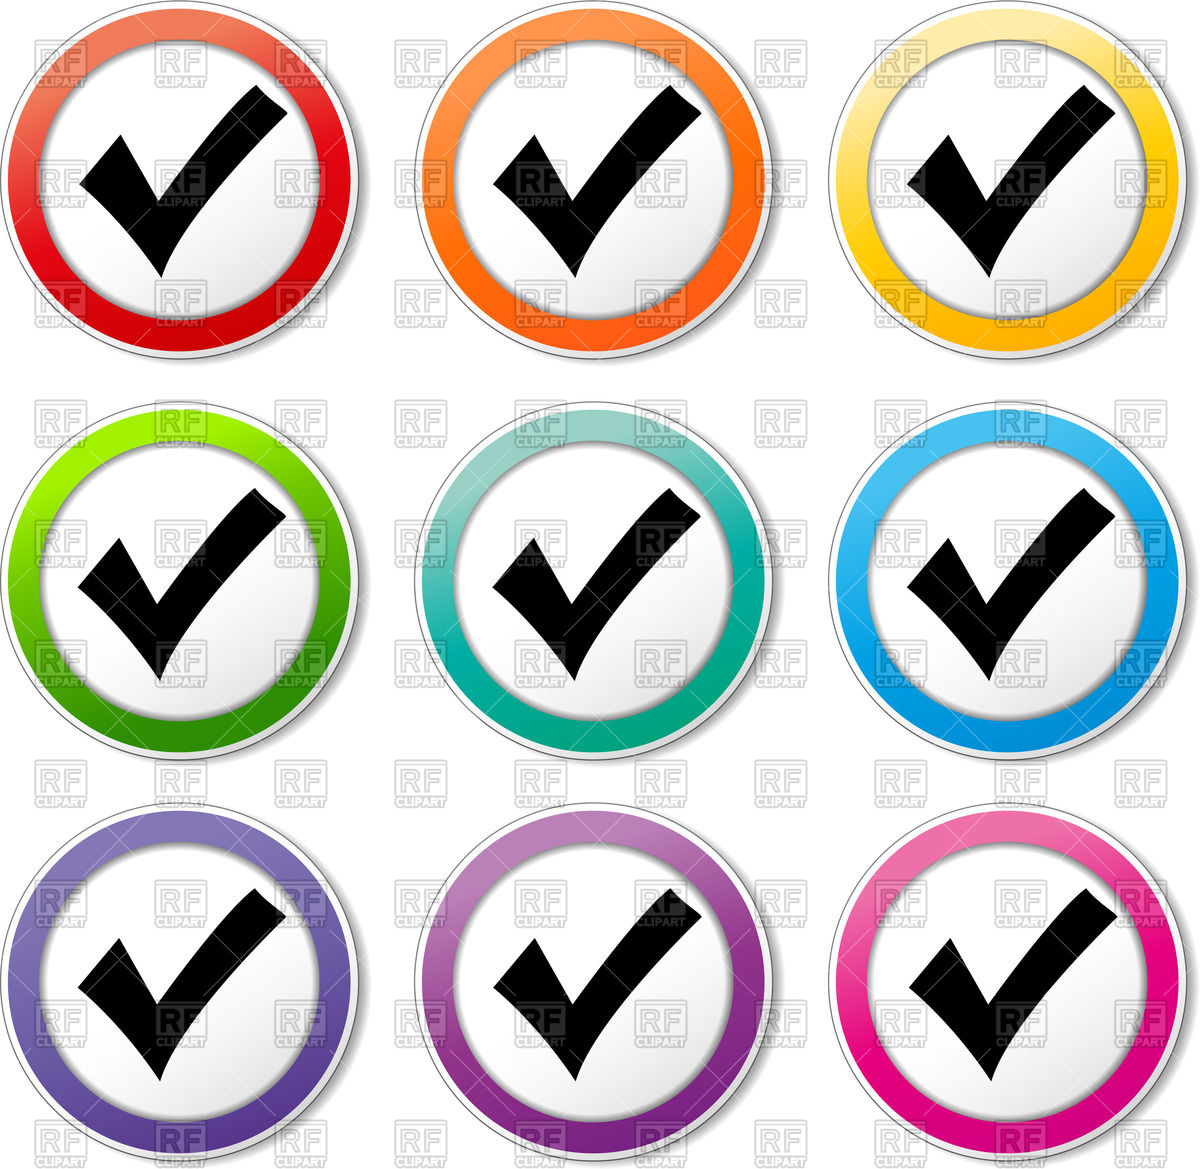 1200x1169 Check Mark Icons Vector Image Vector Artwork Of Icons And